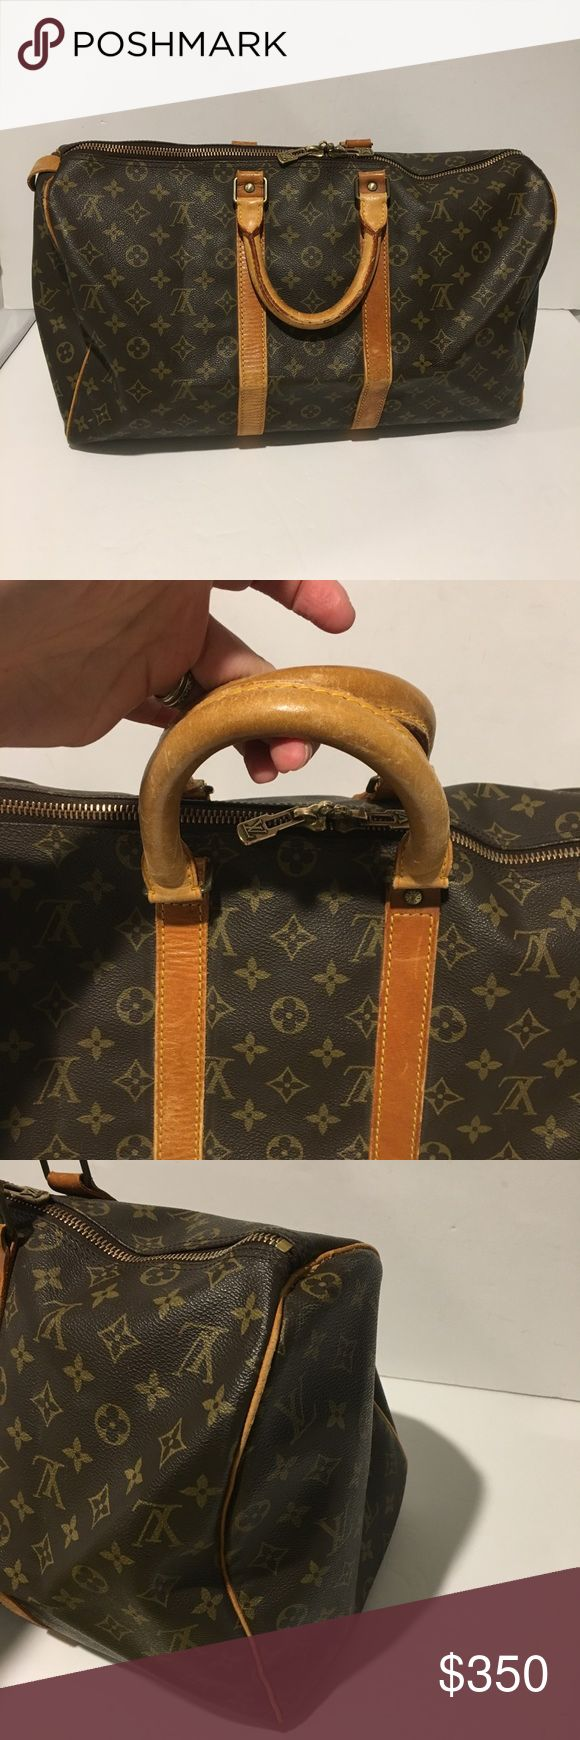 Authentic louis vuitton keepall 45 Vintage .ready to use.100% authentic .price firm .no trades Louis Vuitton Bags Travel Bags